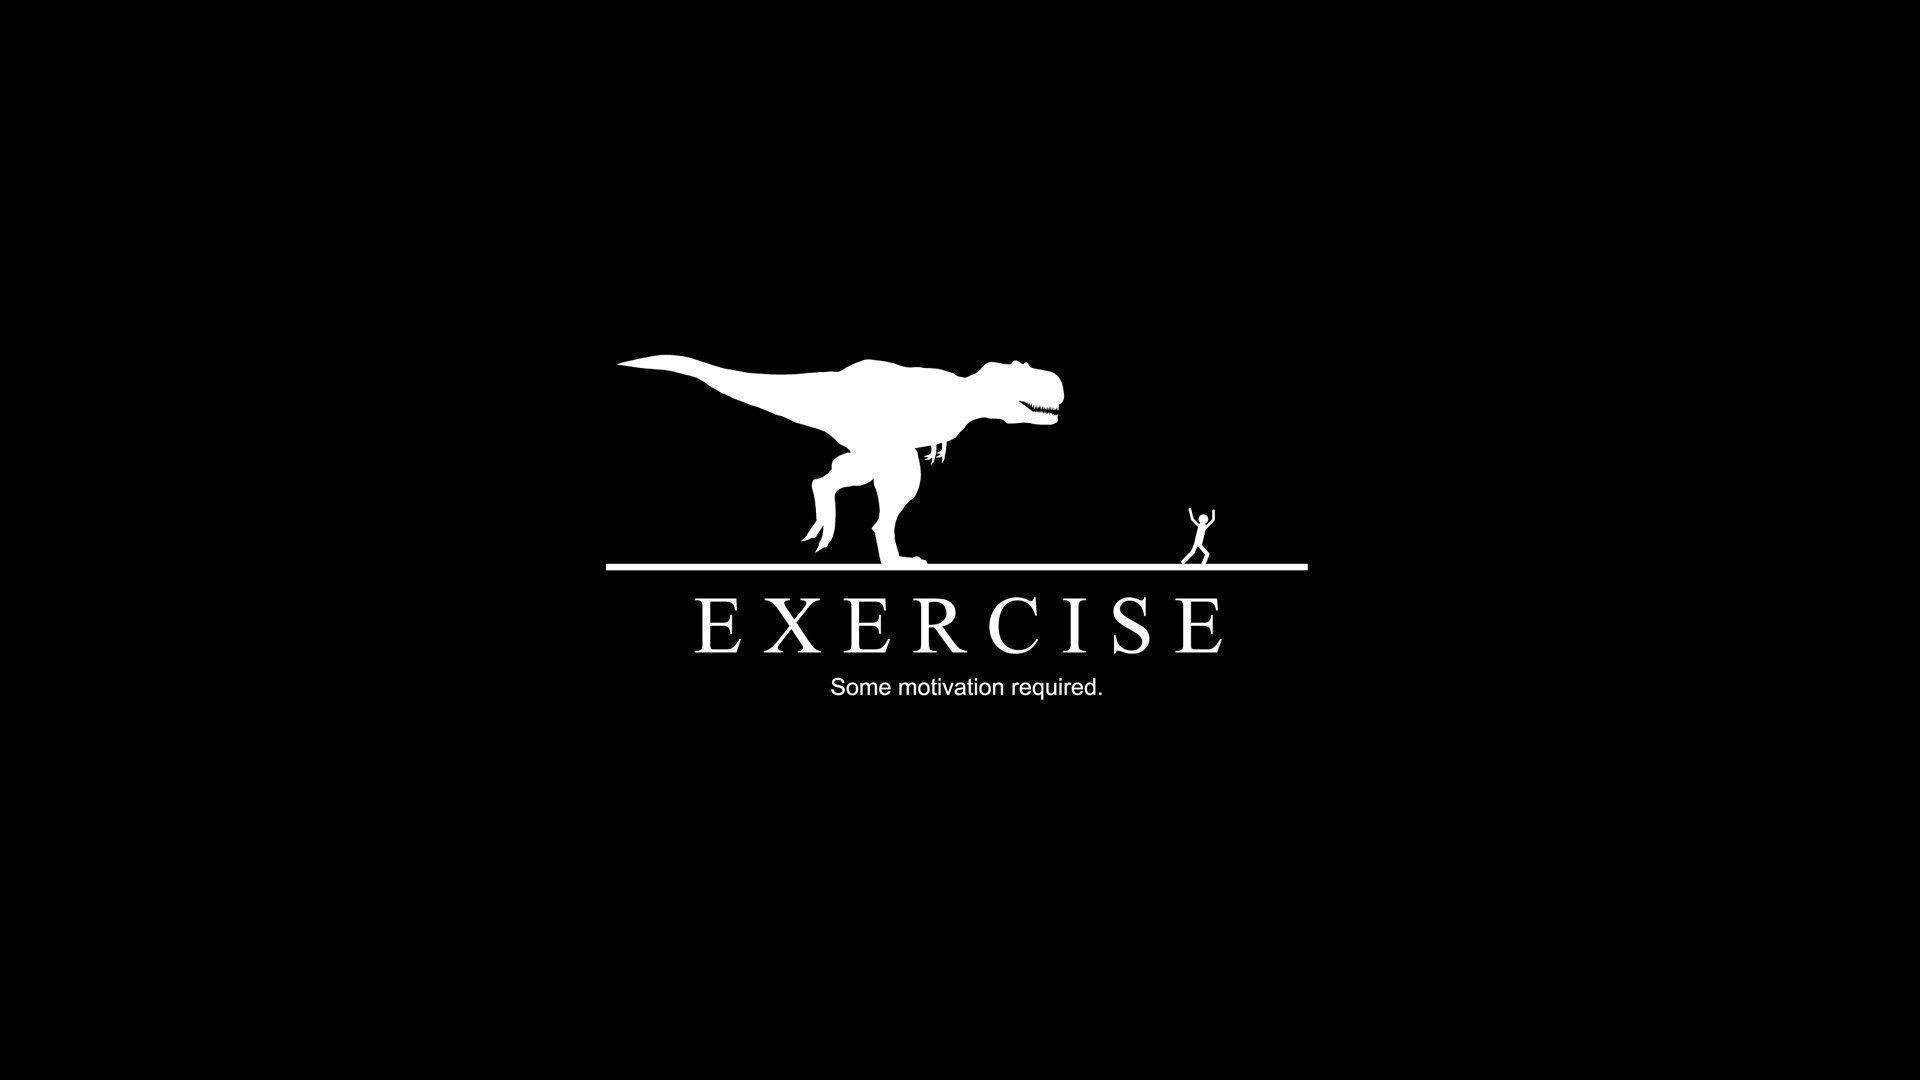 Some Motivation Required Dinosaur Man Funny HD Wallpaper - ZoomWalls